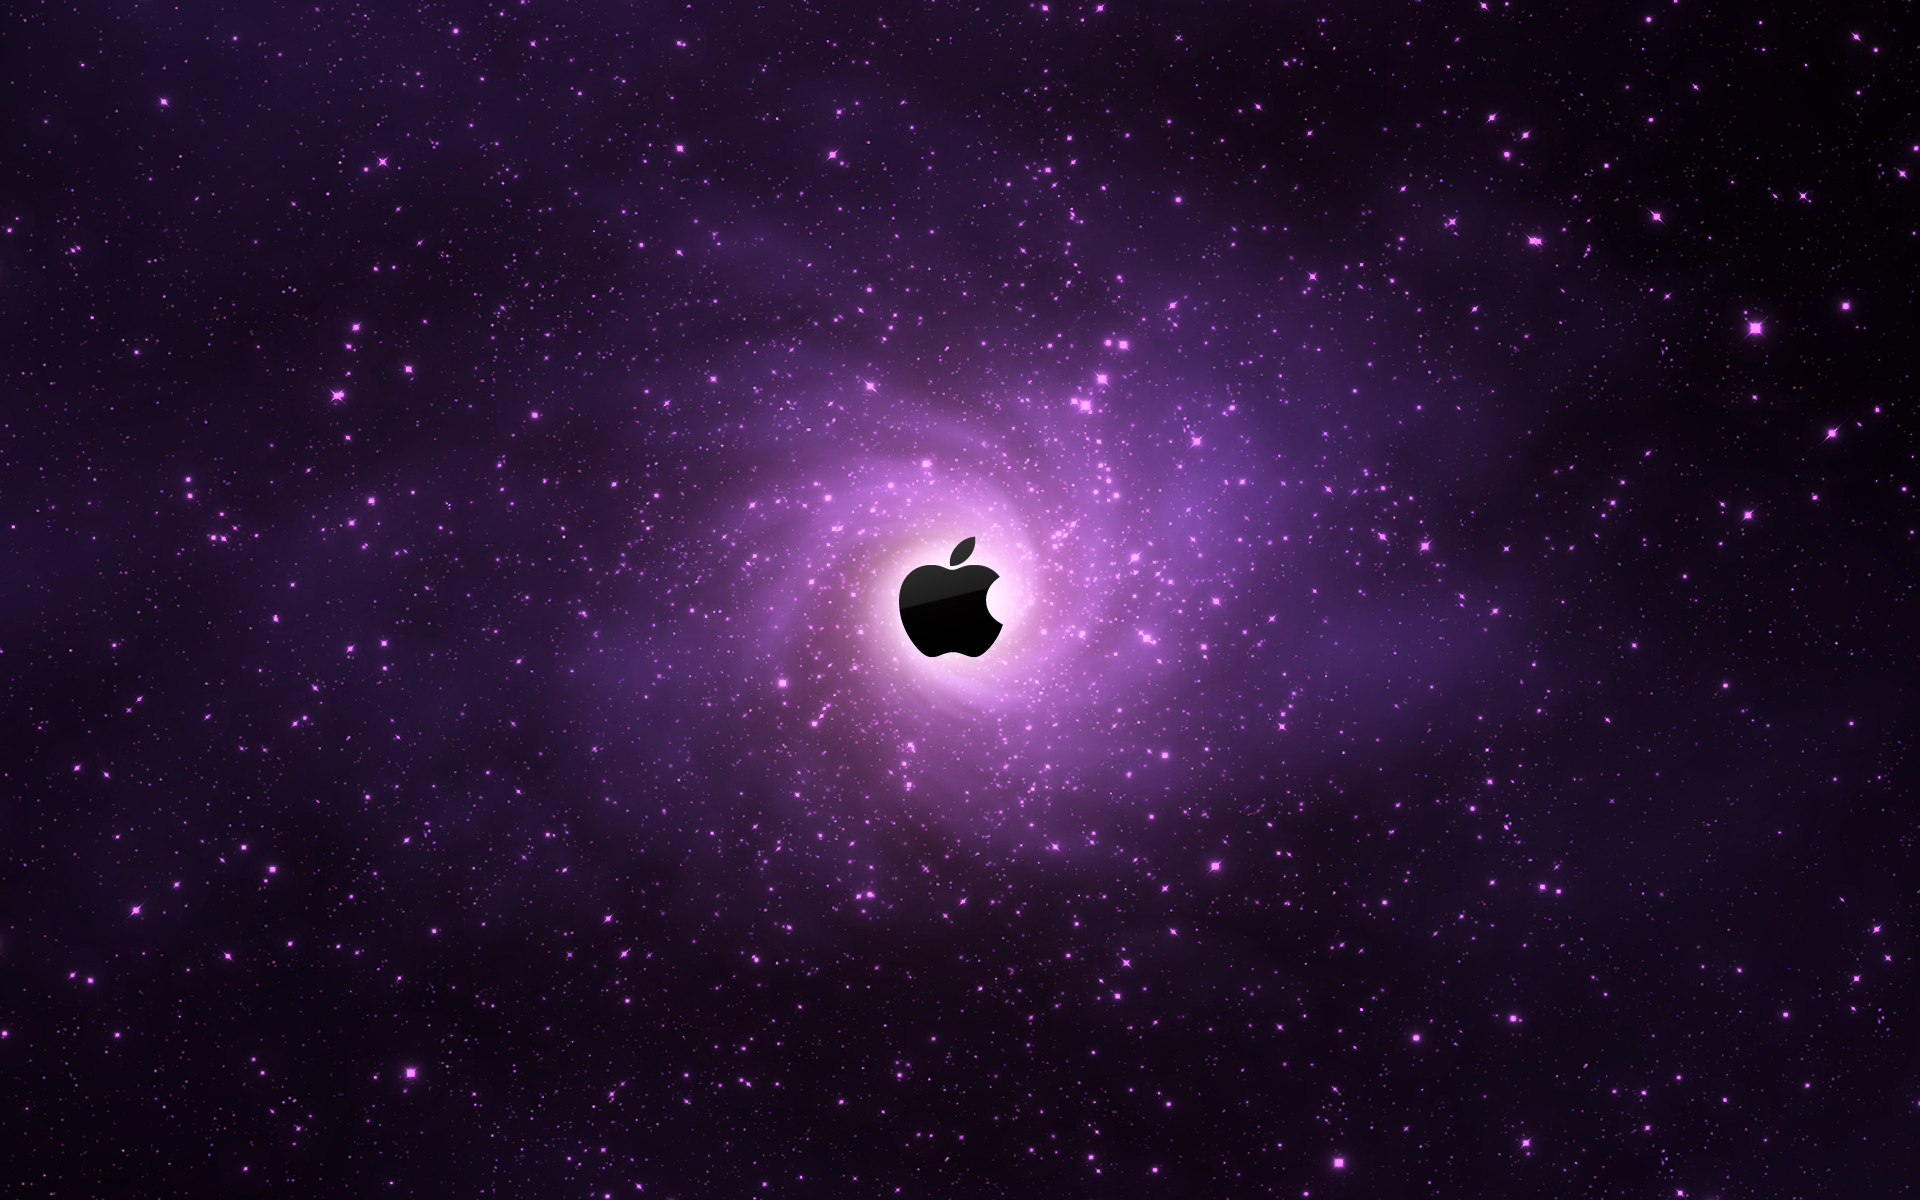 Apple Logo Dark Wallpapers HD Wallpapers 1920x1200